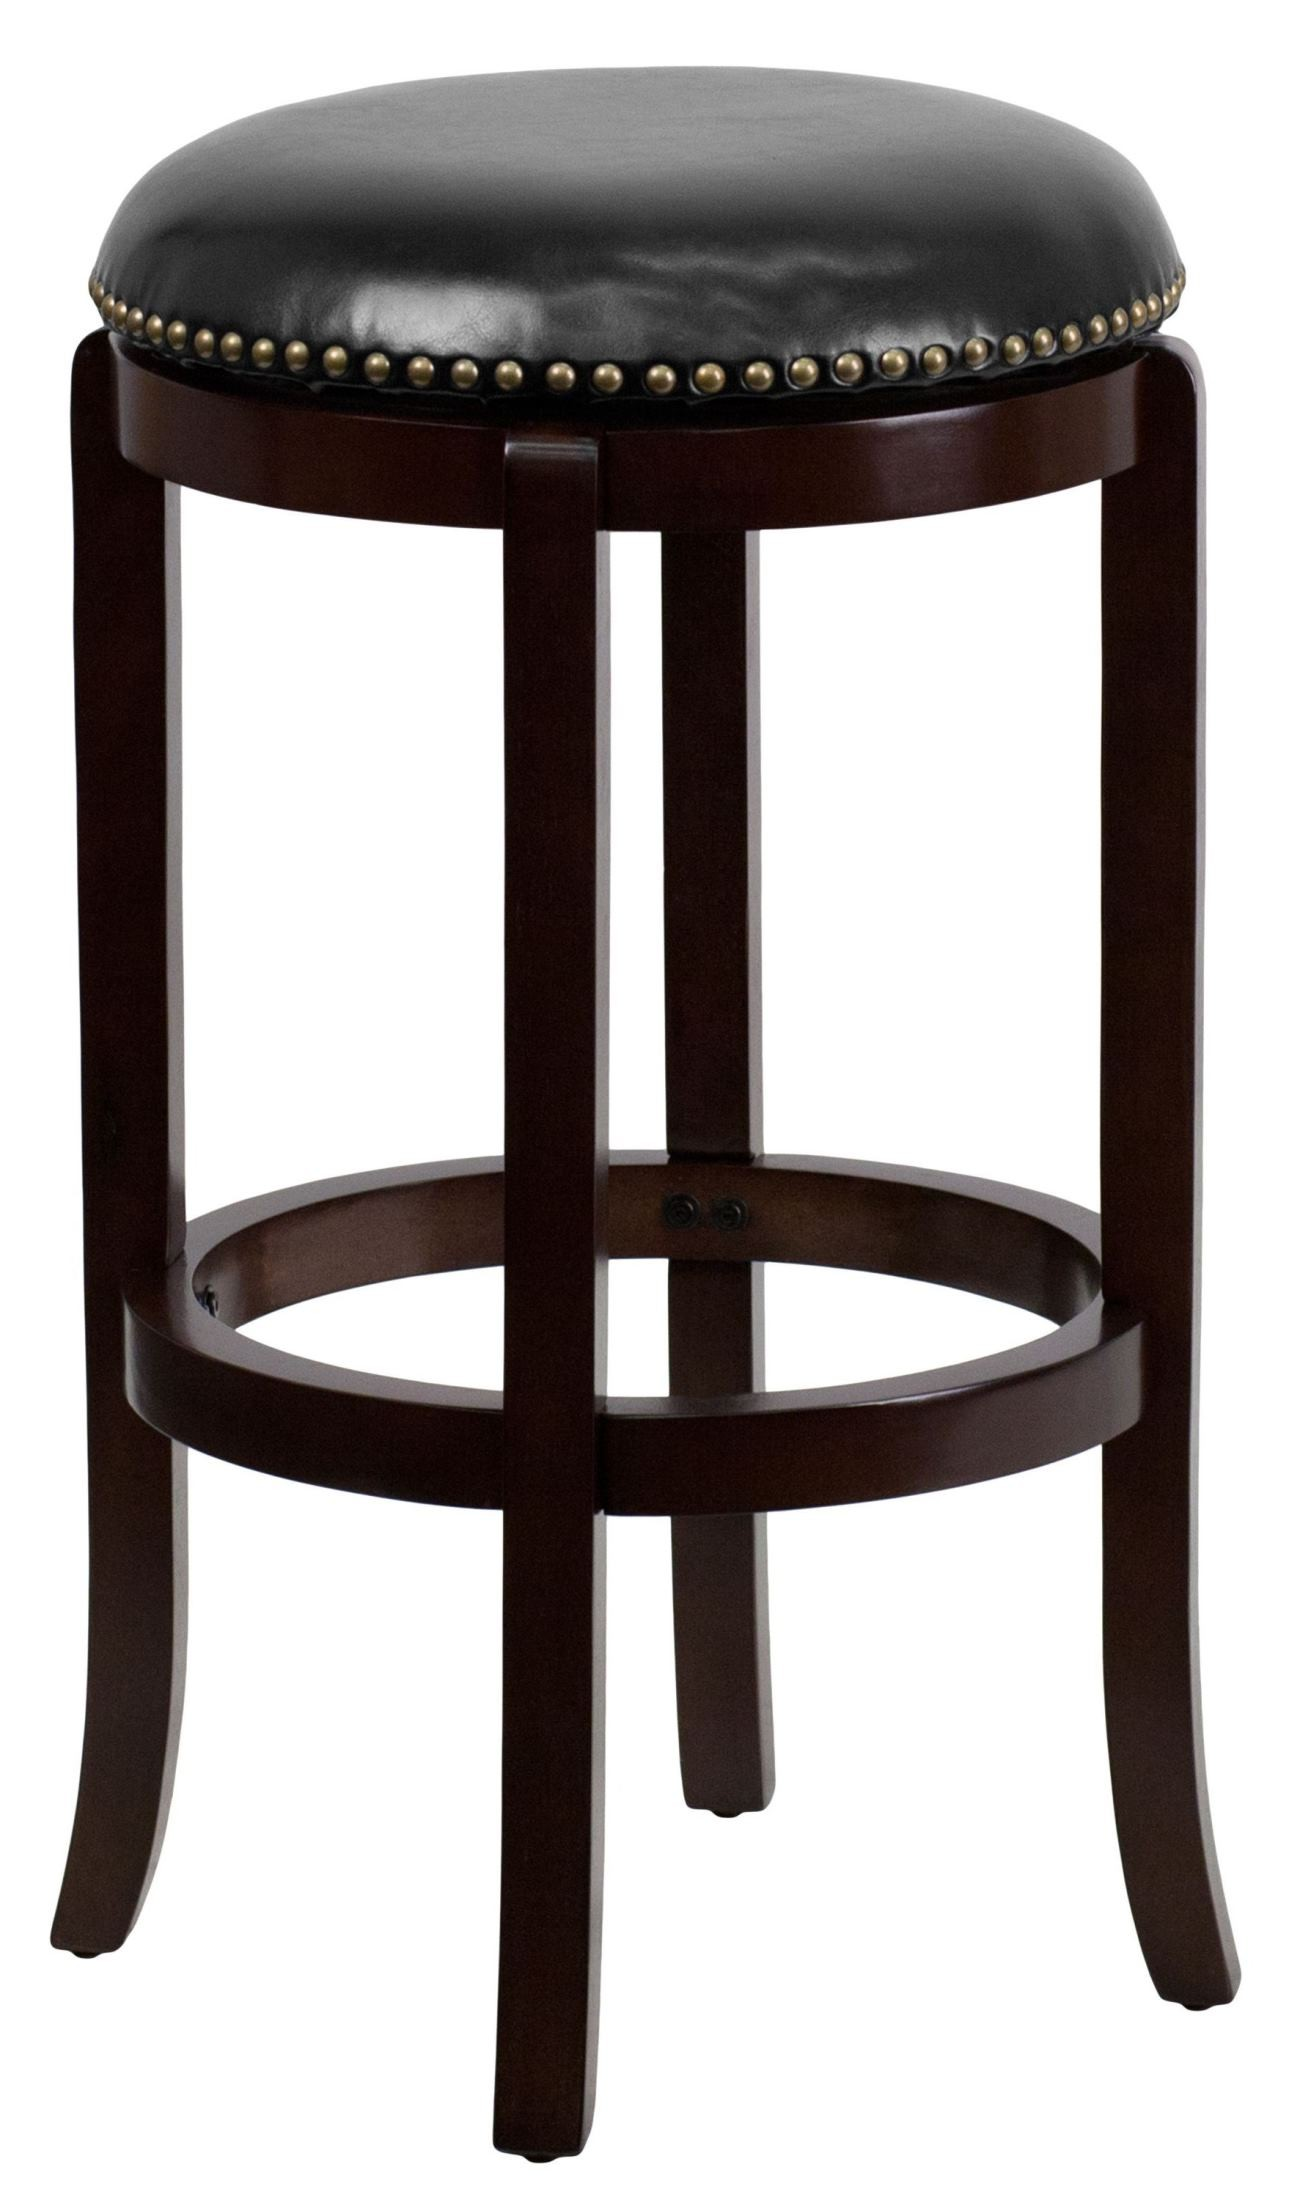 29 backless cappuccino wood black leather swivel bar stool from renegade ta 68929 ca gg. Black Bedroom Furniture Sets. Home Design Ideas